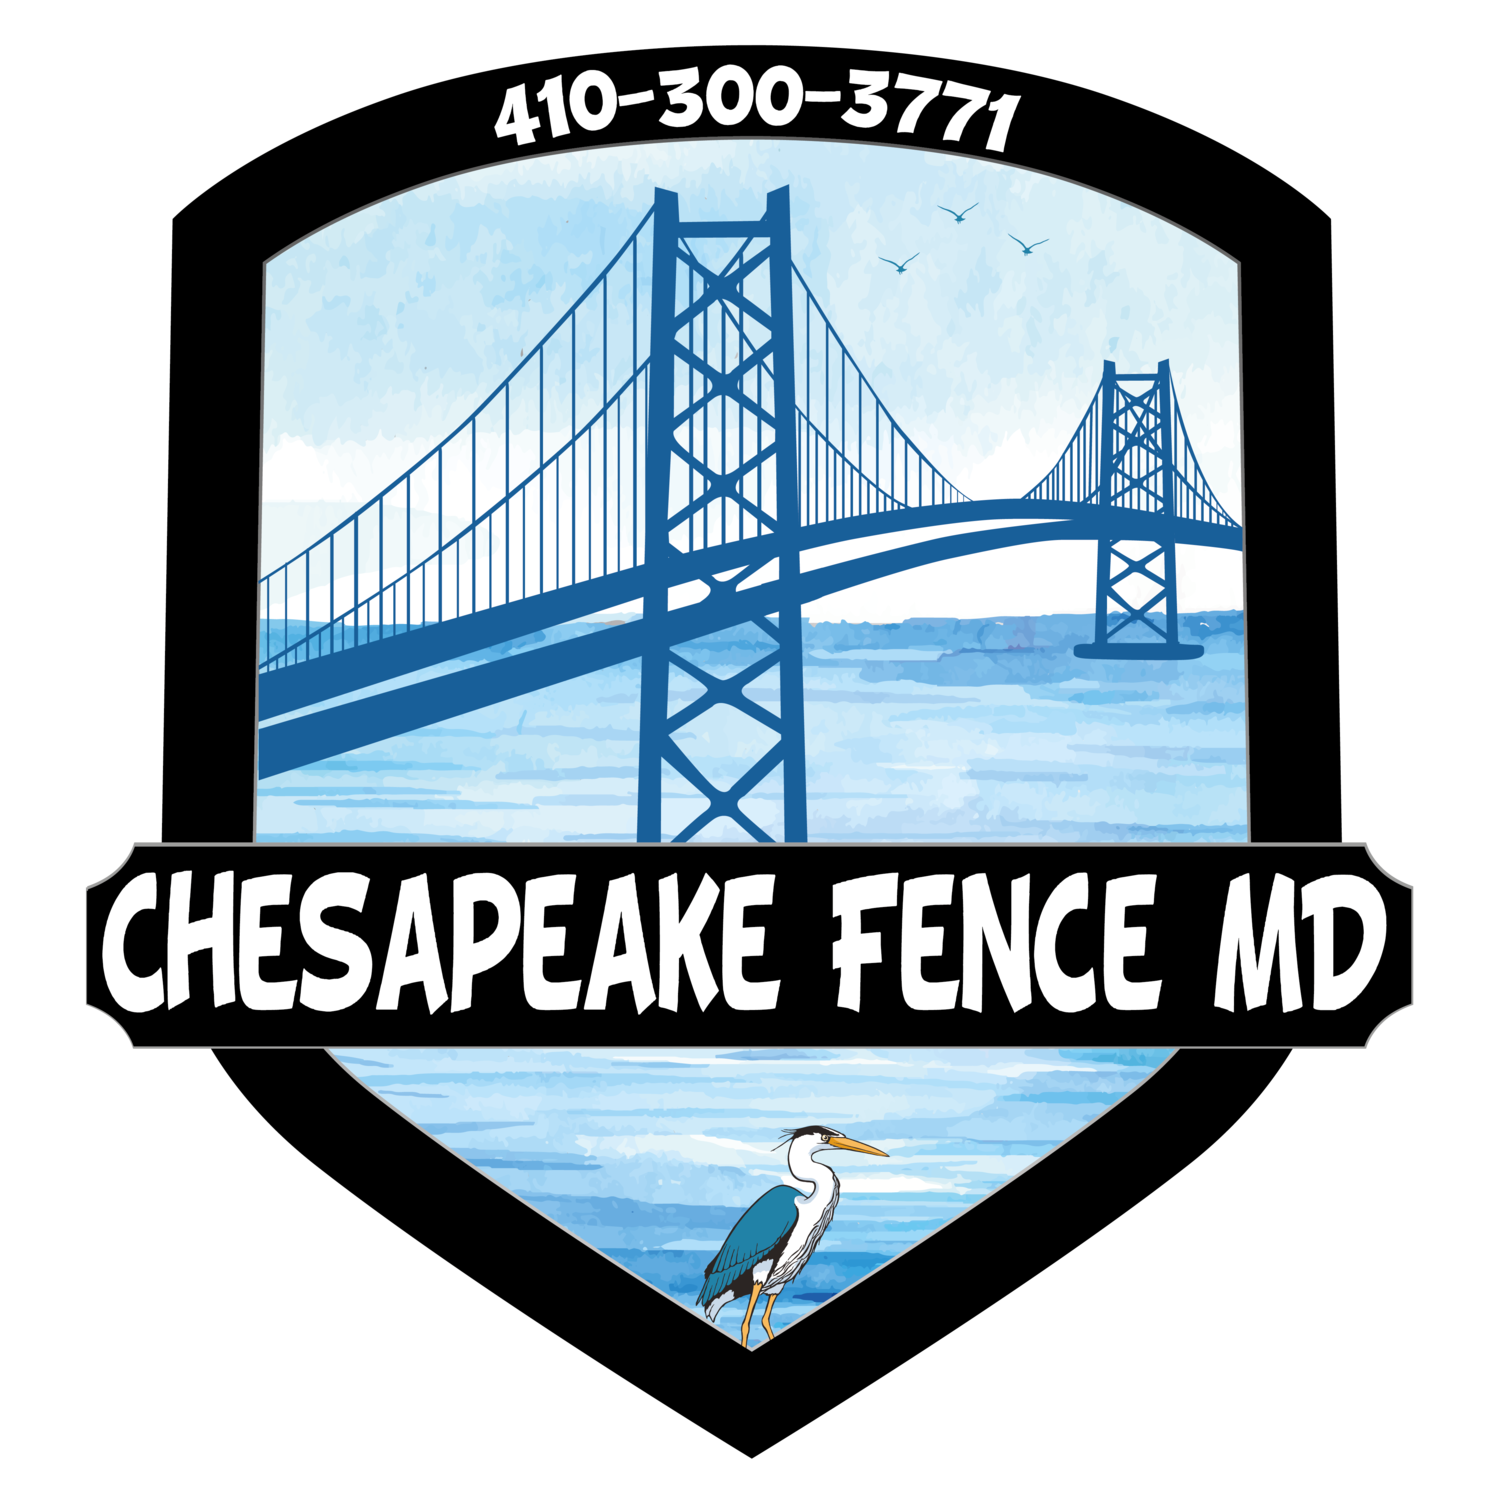 Chesapeake Fence